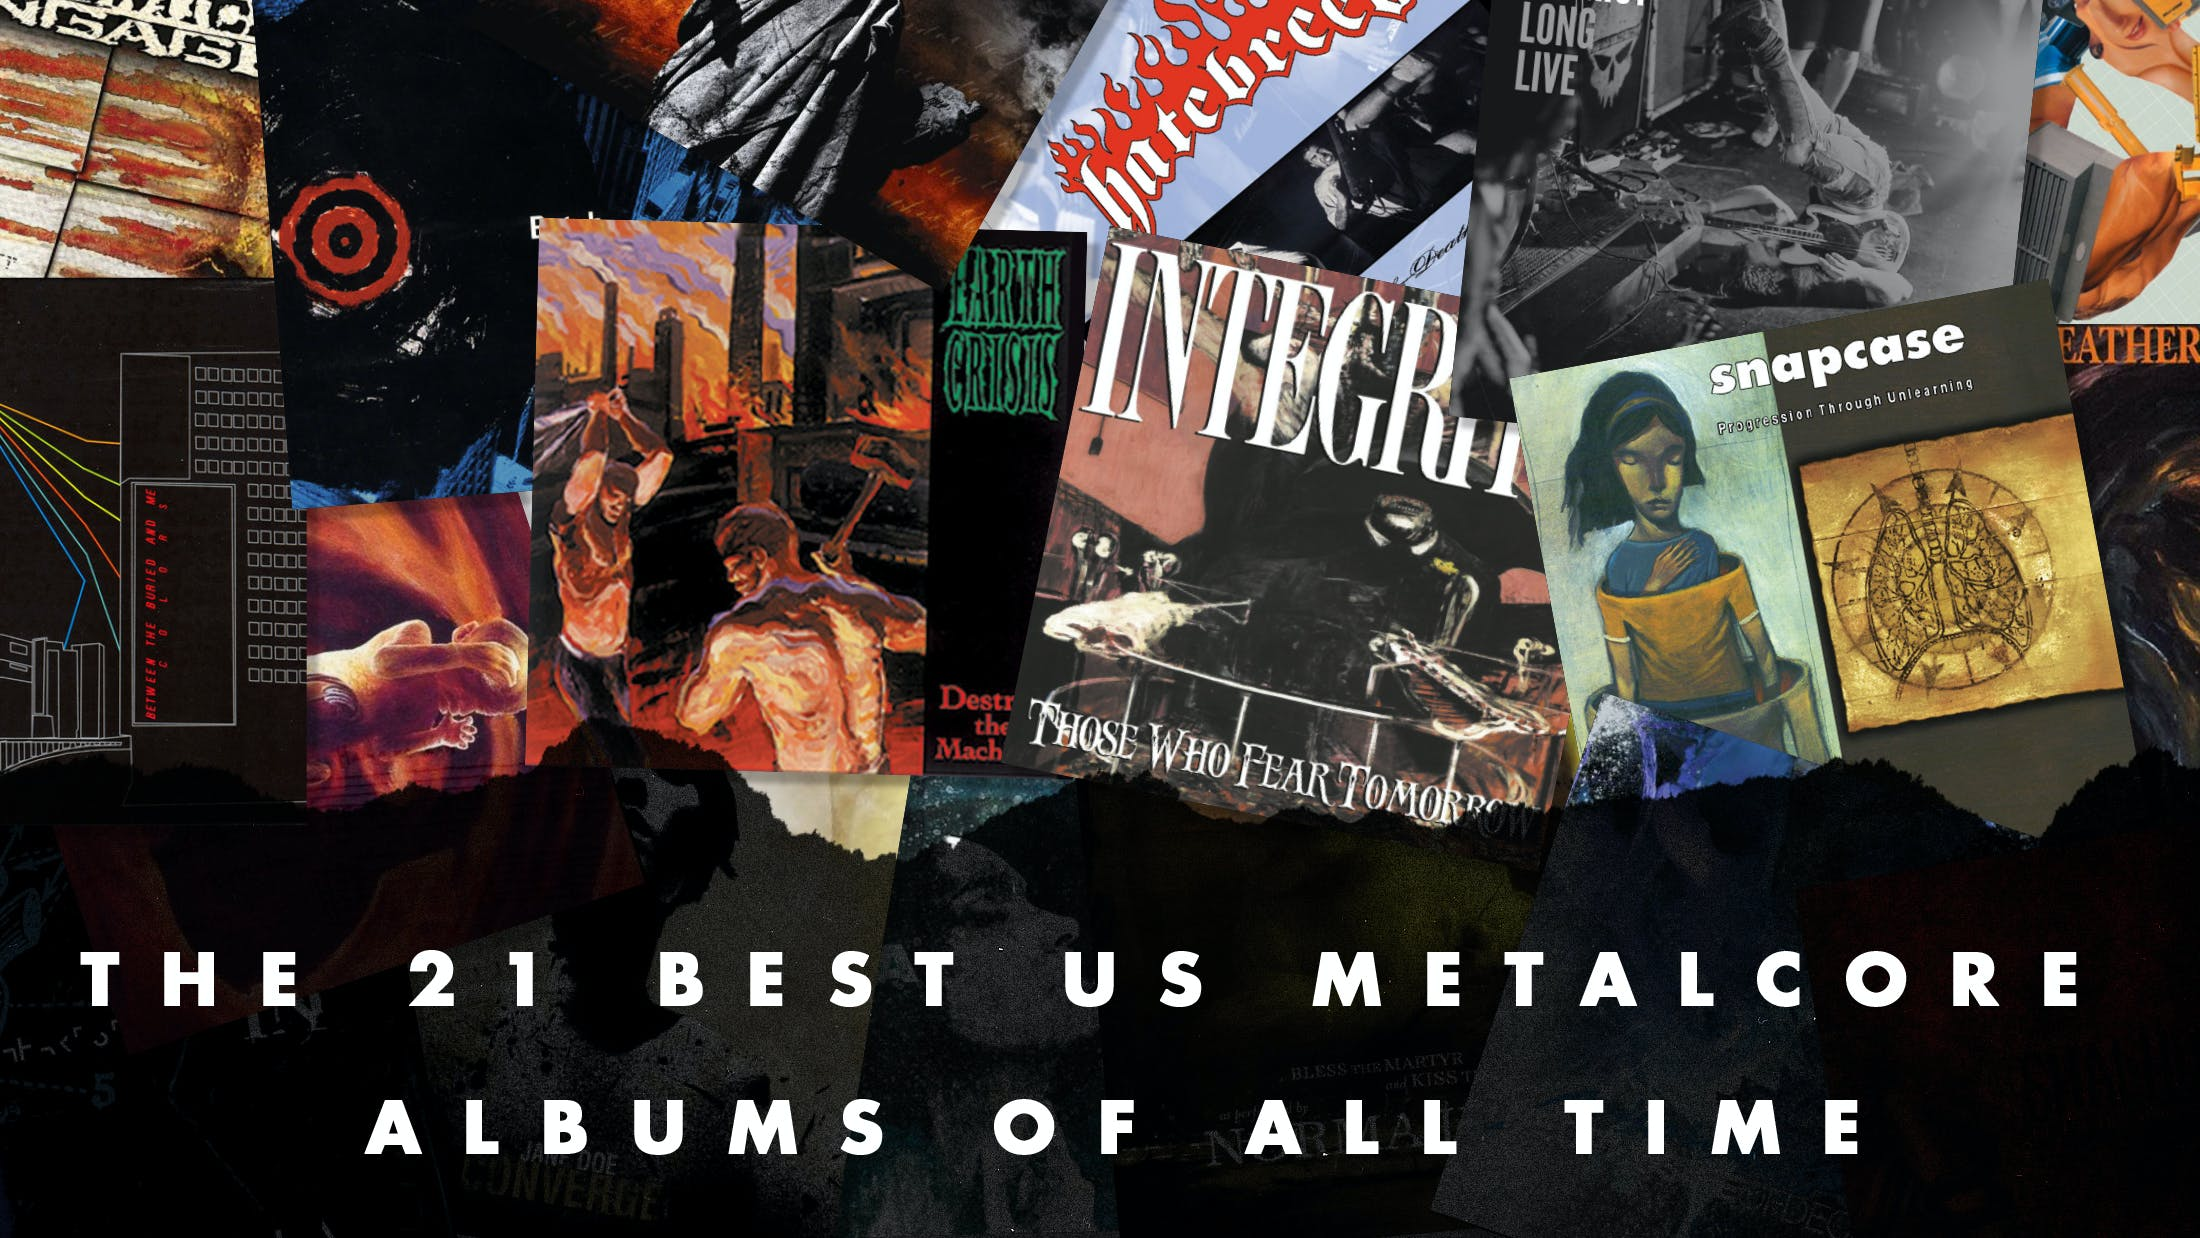 The 21 Best U.S. Metalcore Albums Of All Time